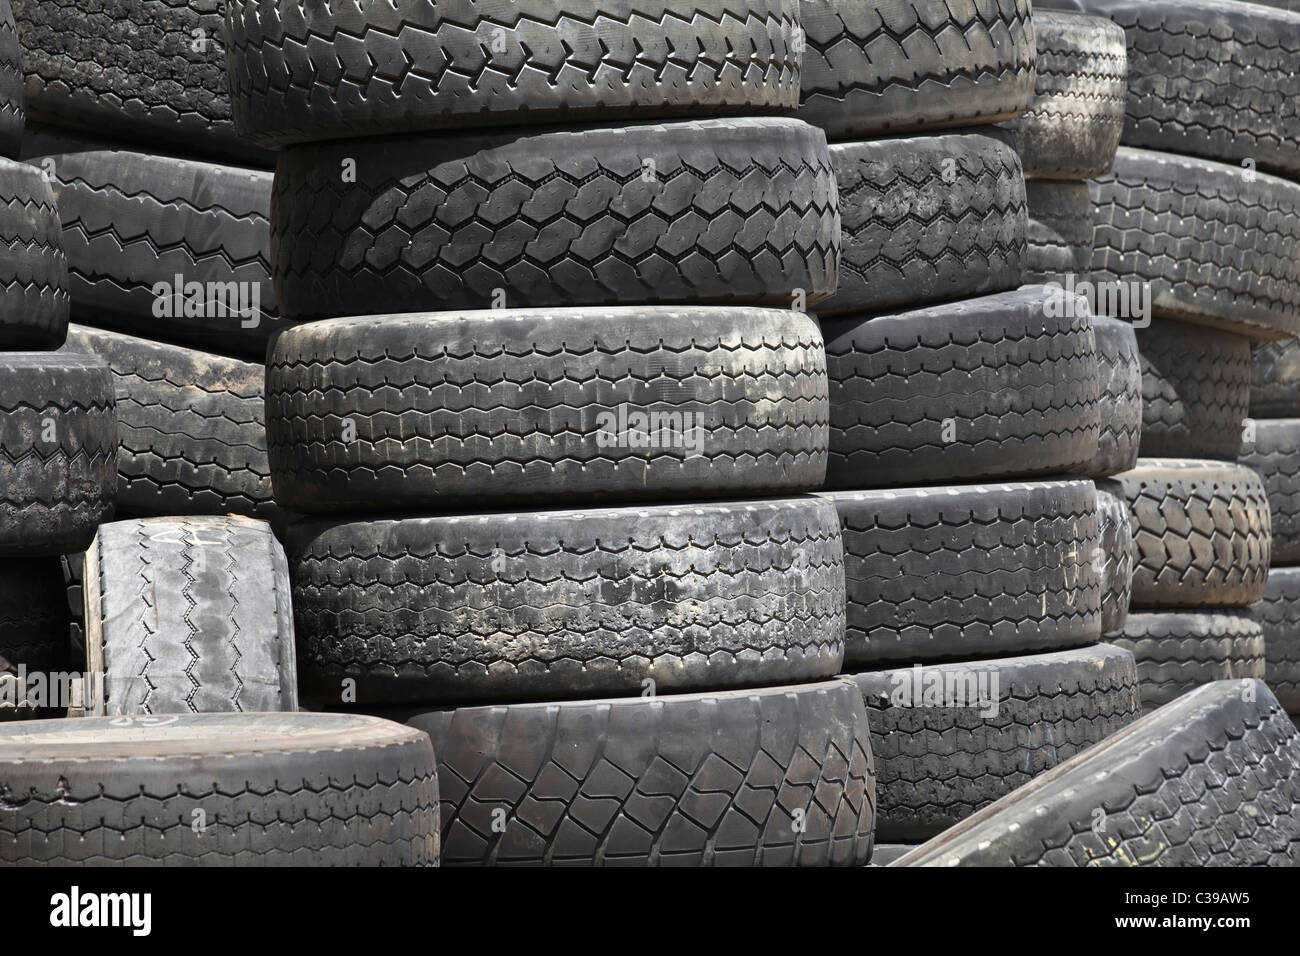 Stacks of old truck tires - Stock Image